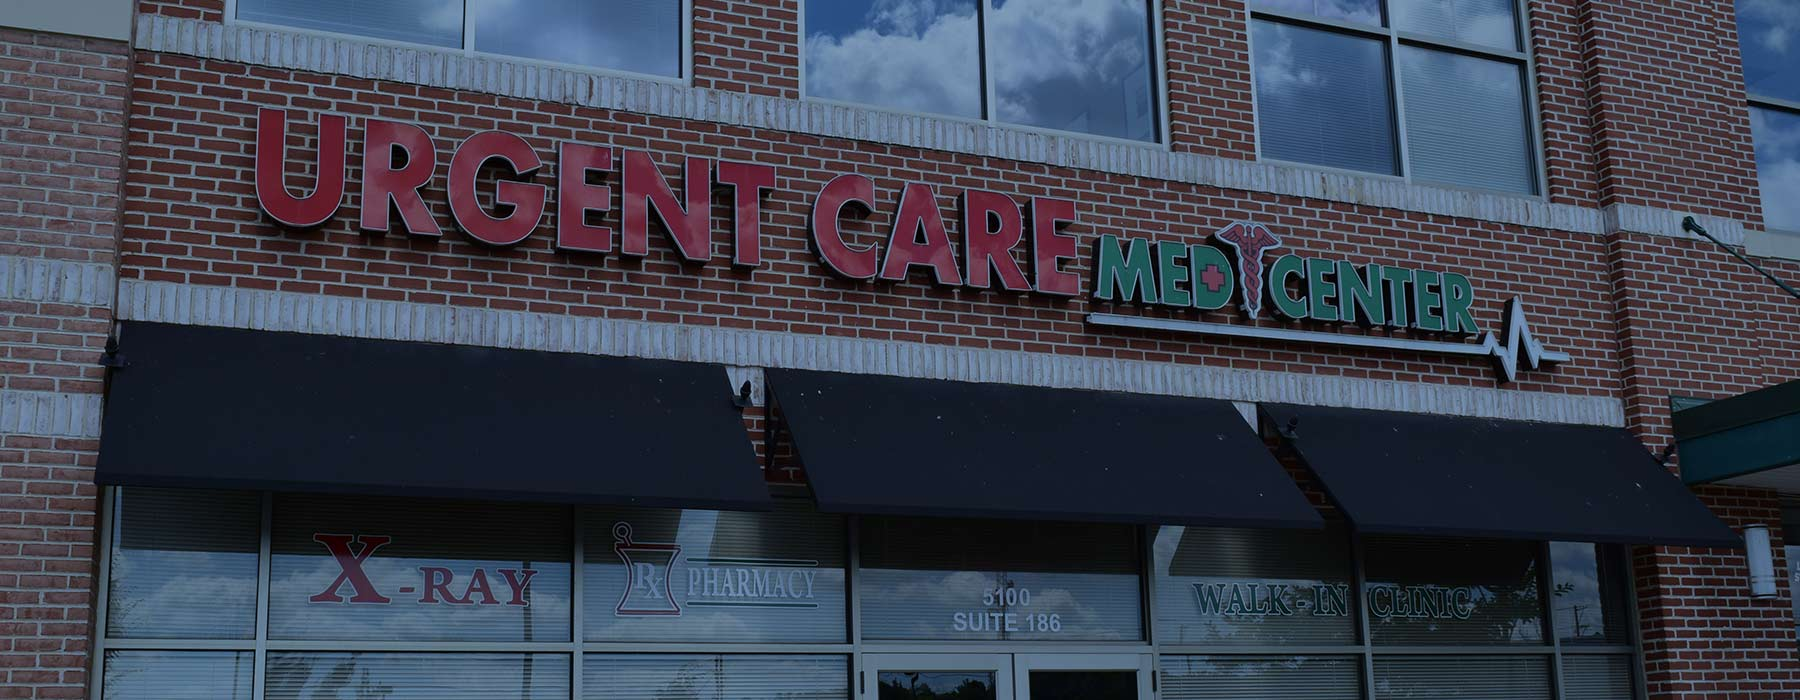 Urgent Care Frederick, MD